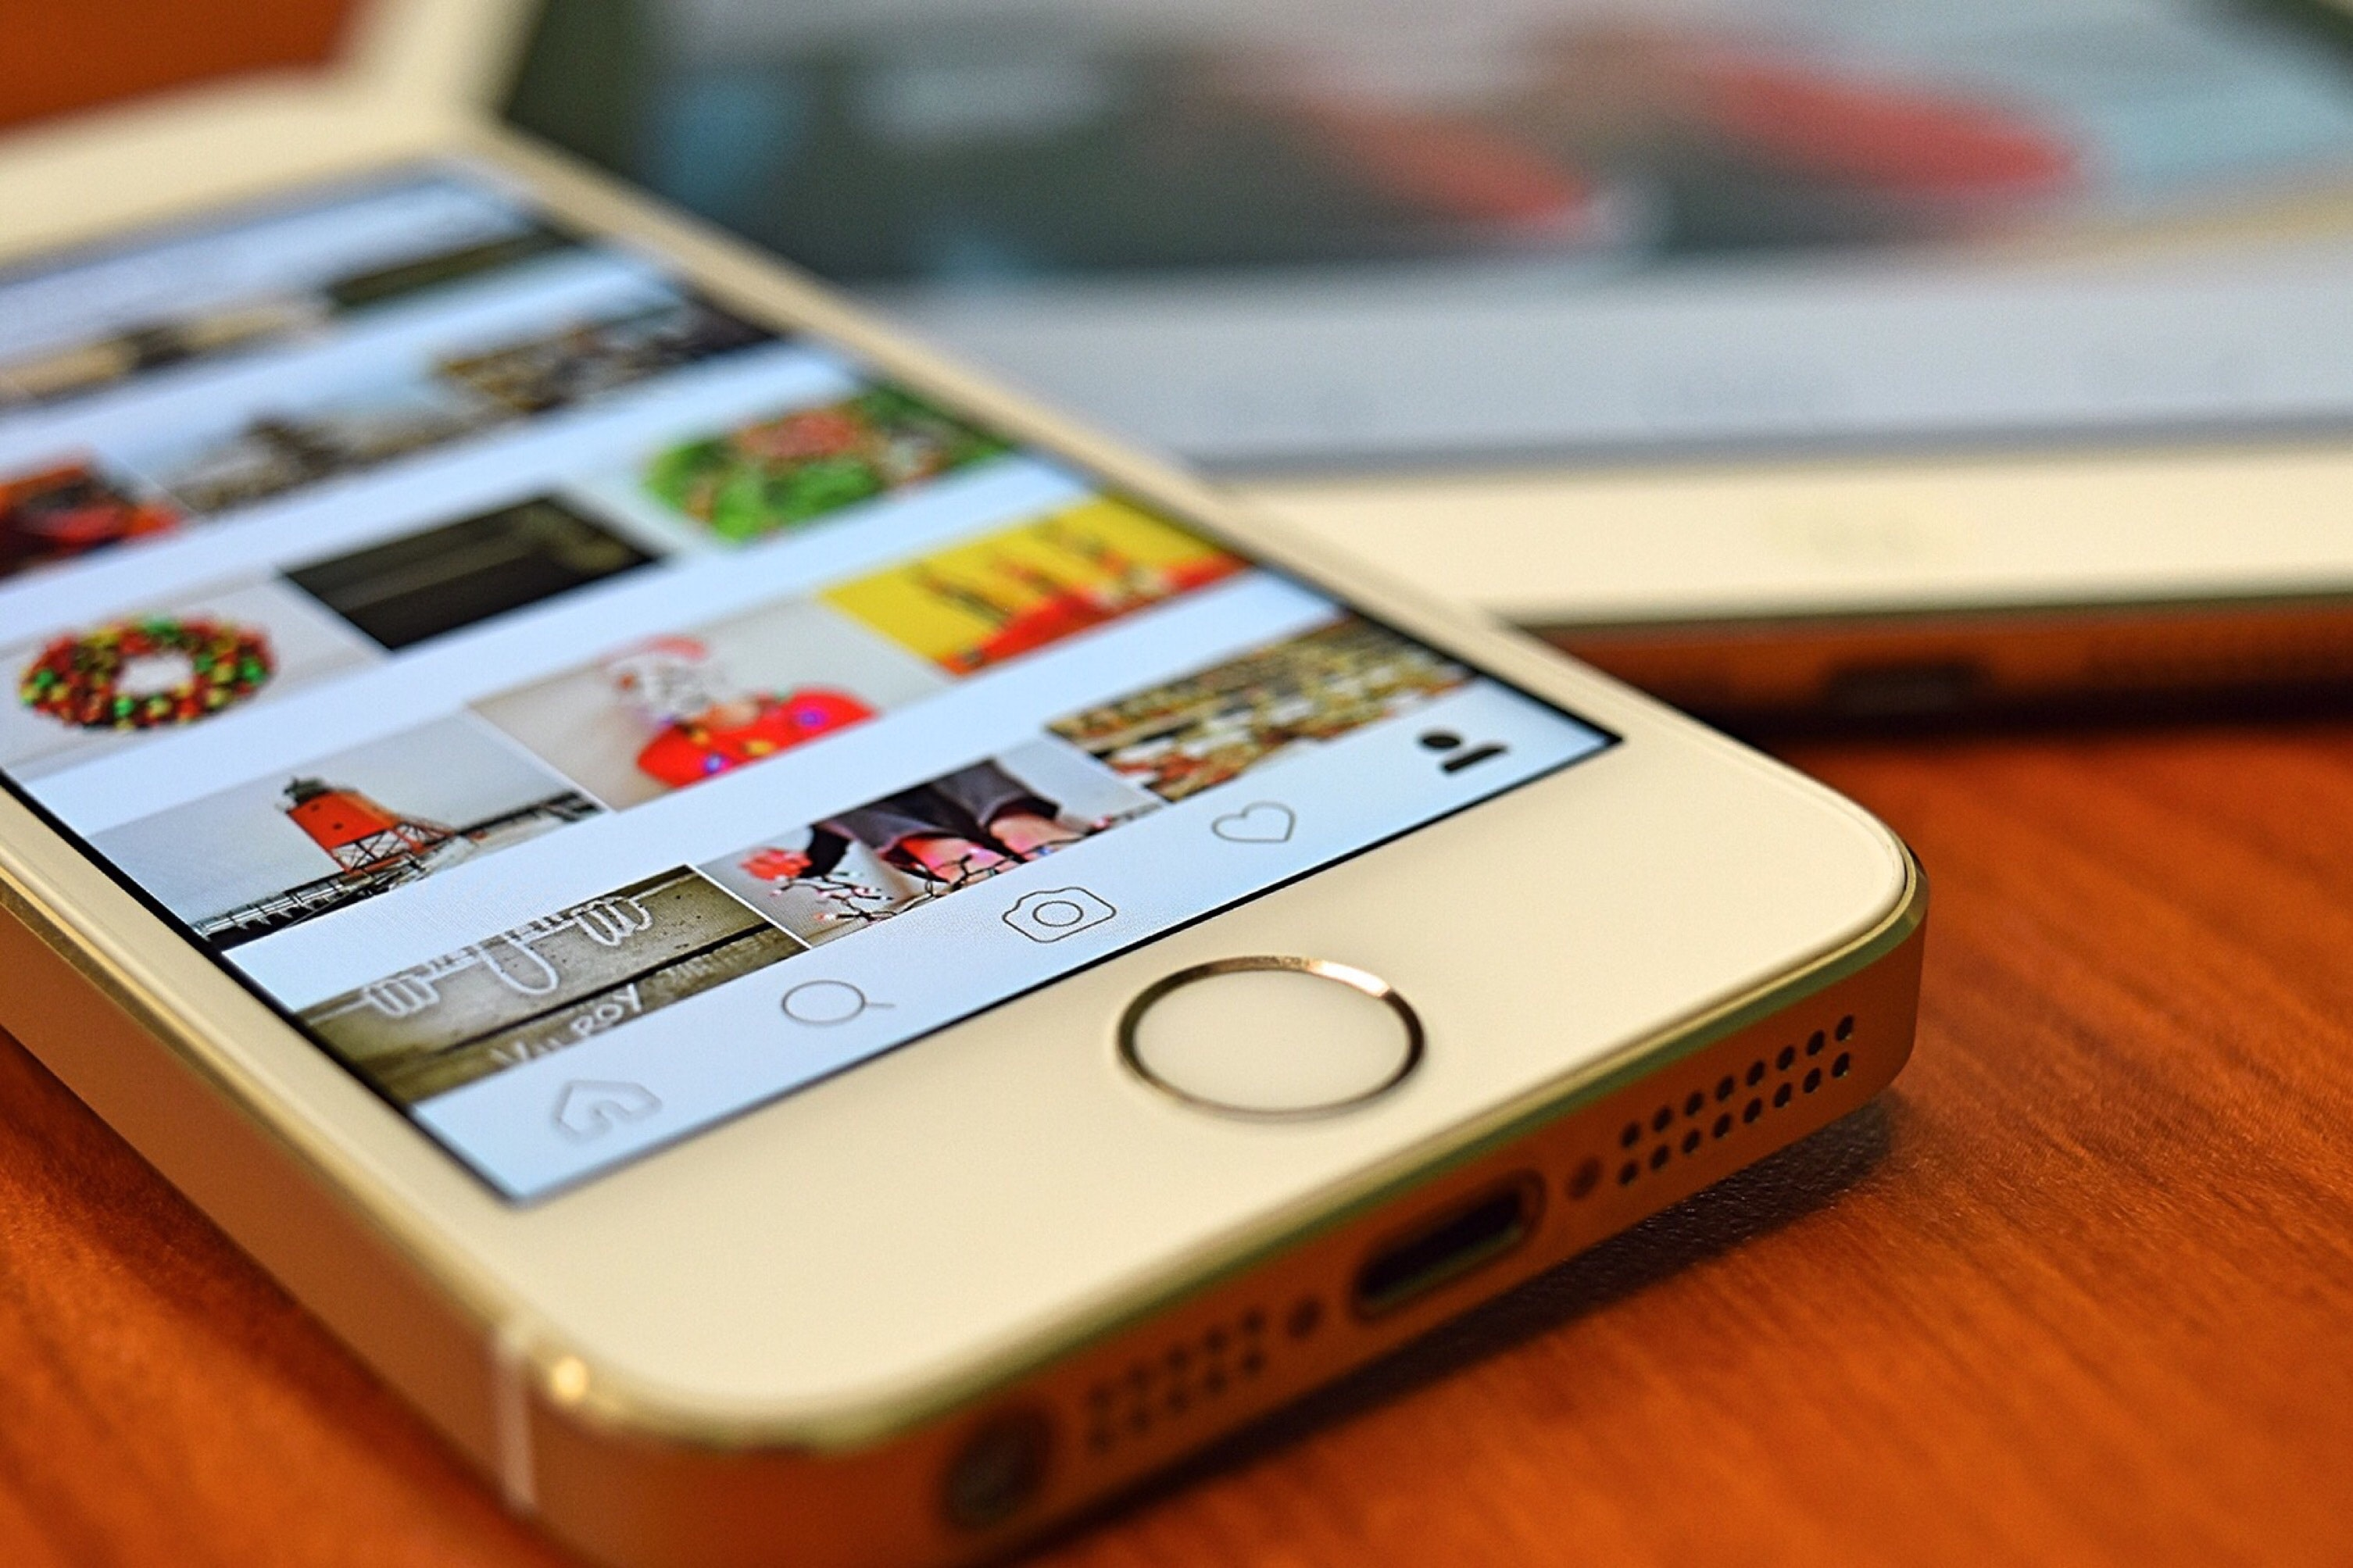 Bringing value to your business through Instagram